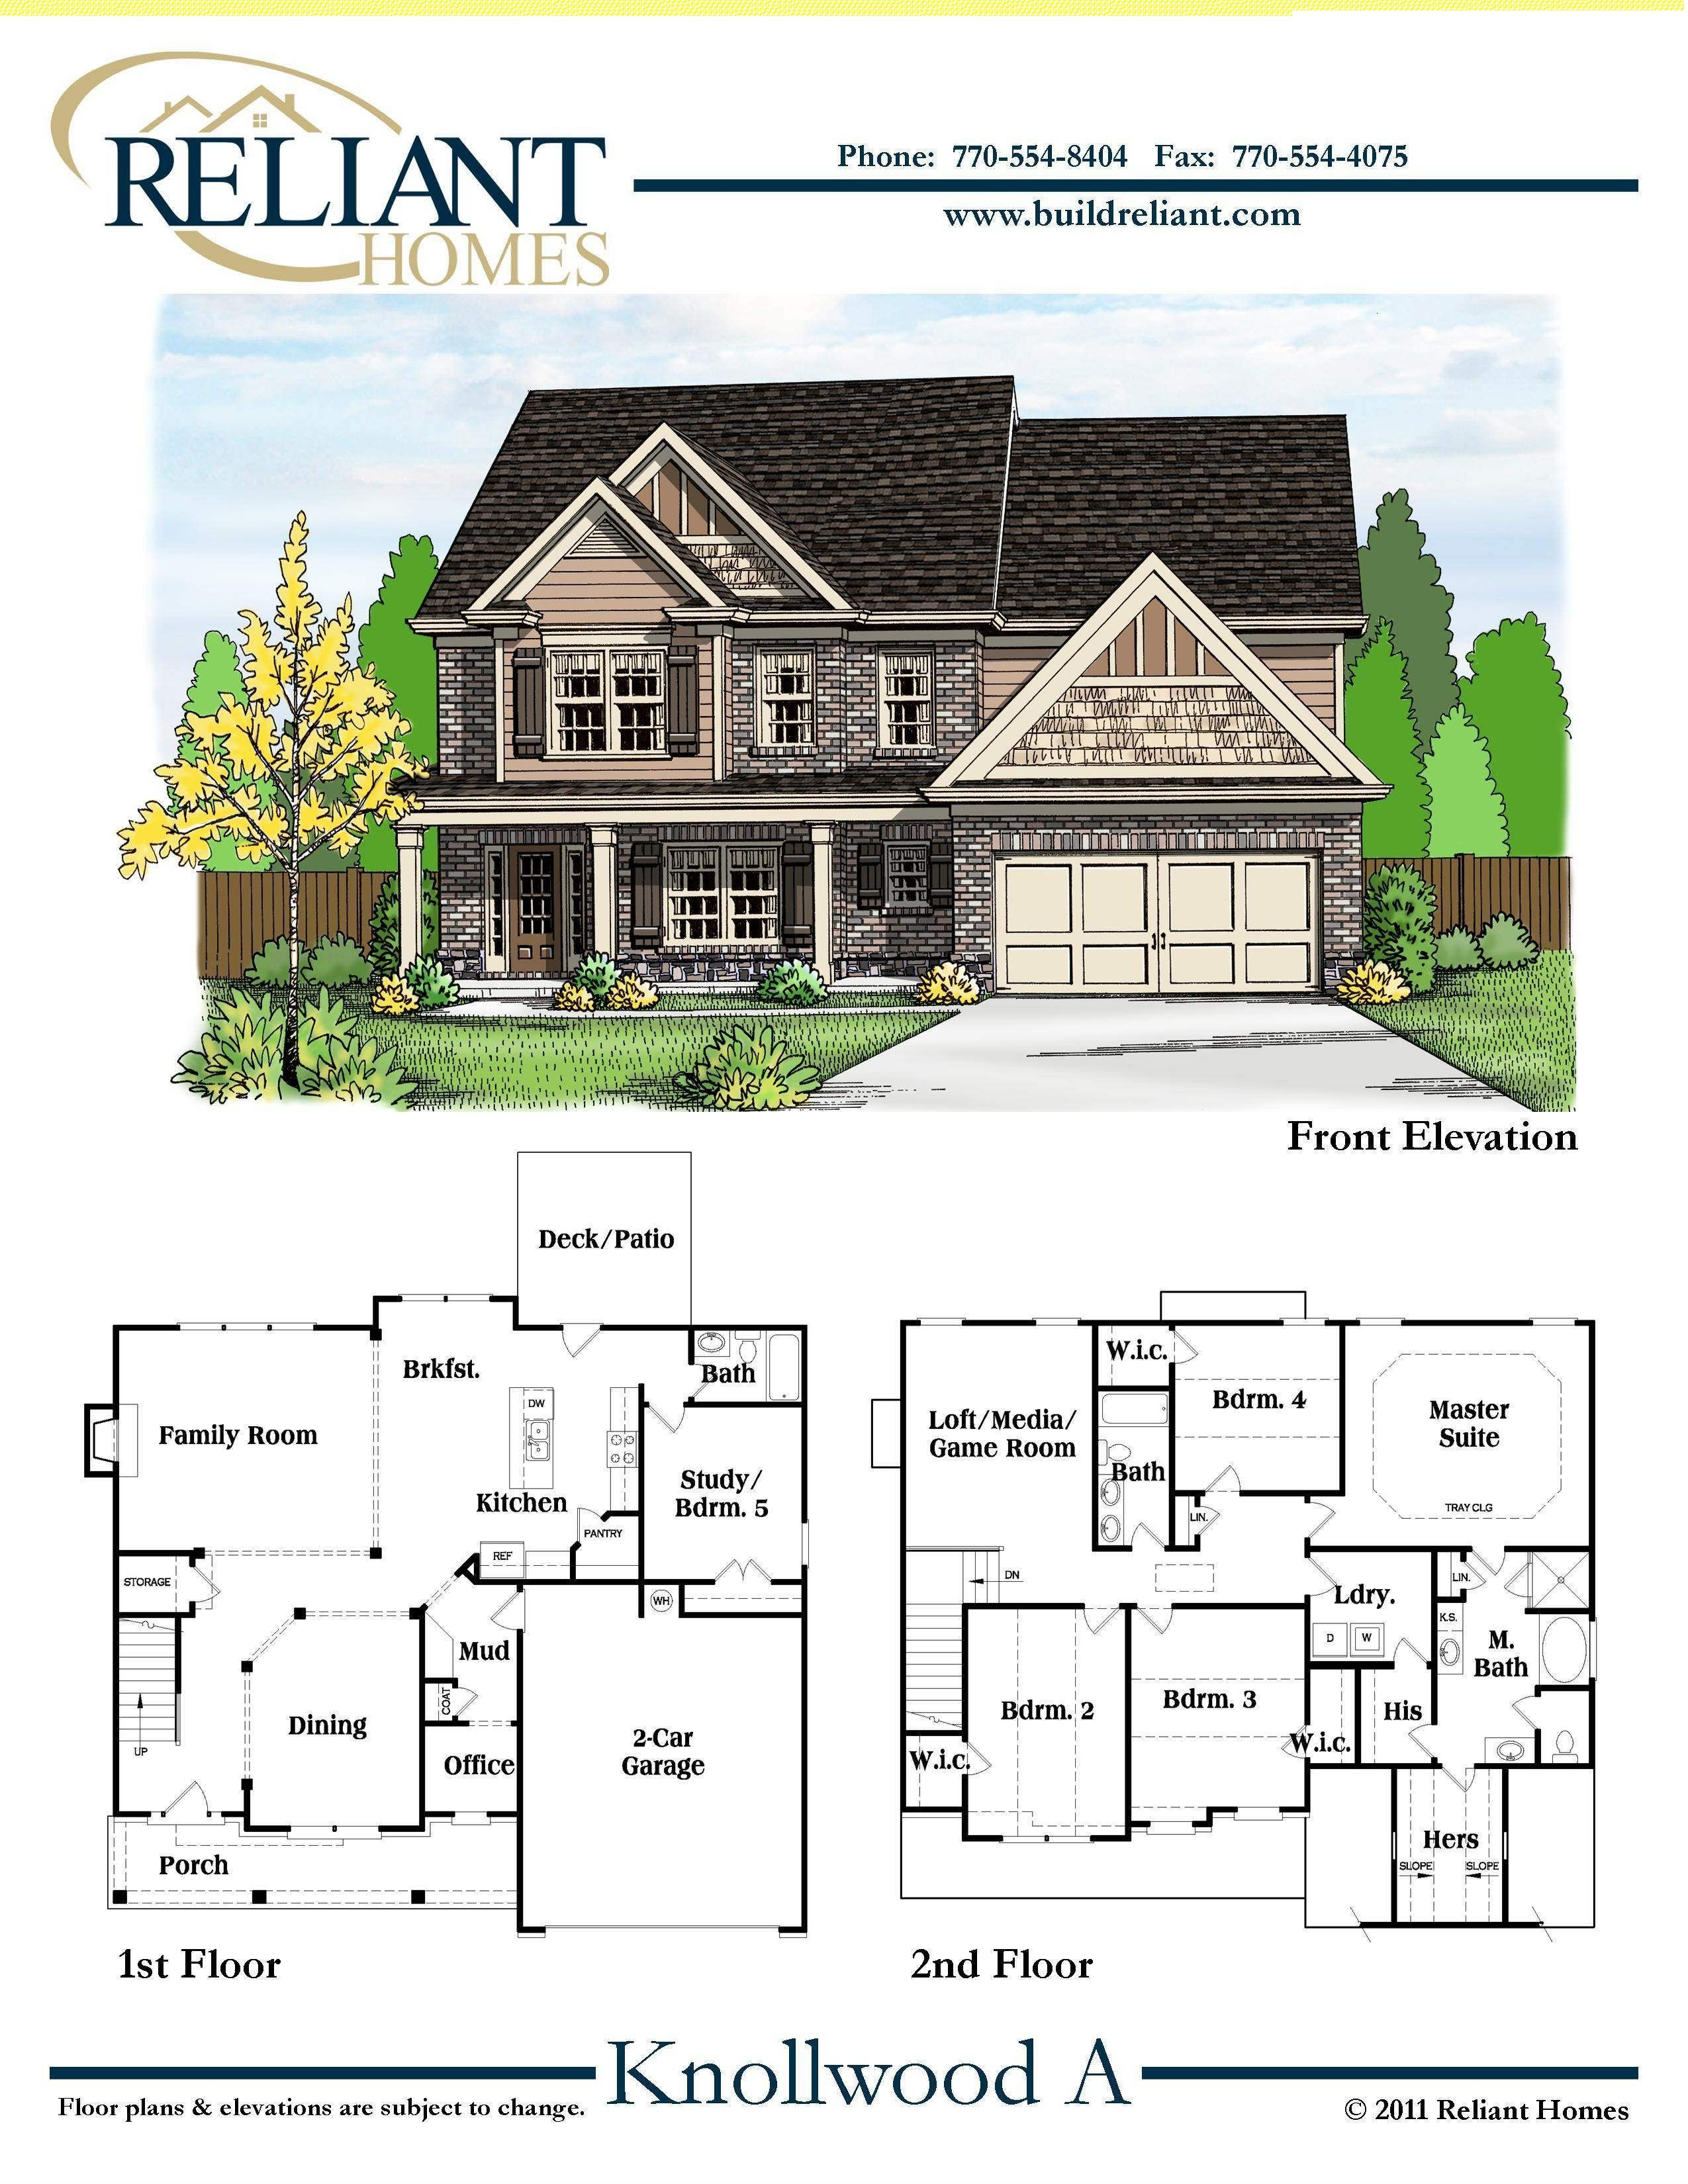 Reliant Homes The Knollwood A Plan Floor Plans Homes